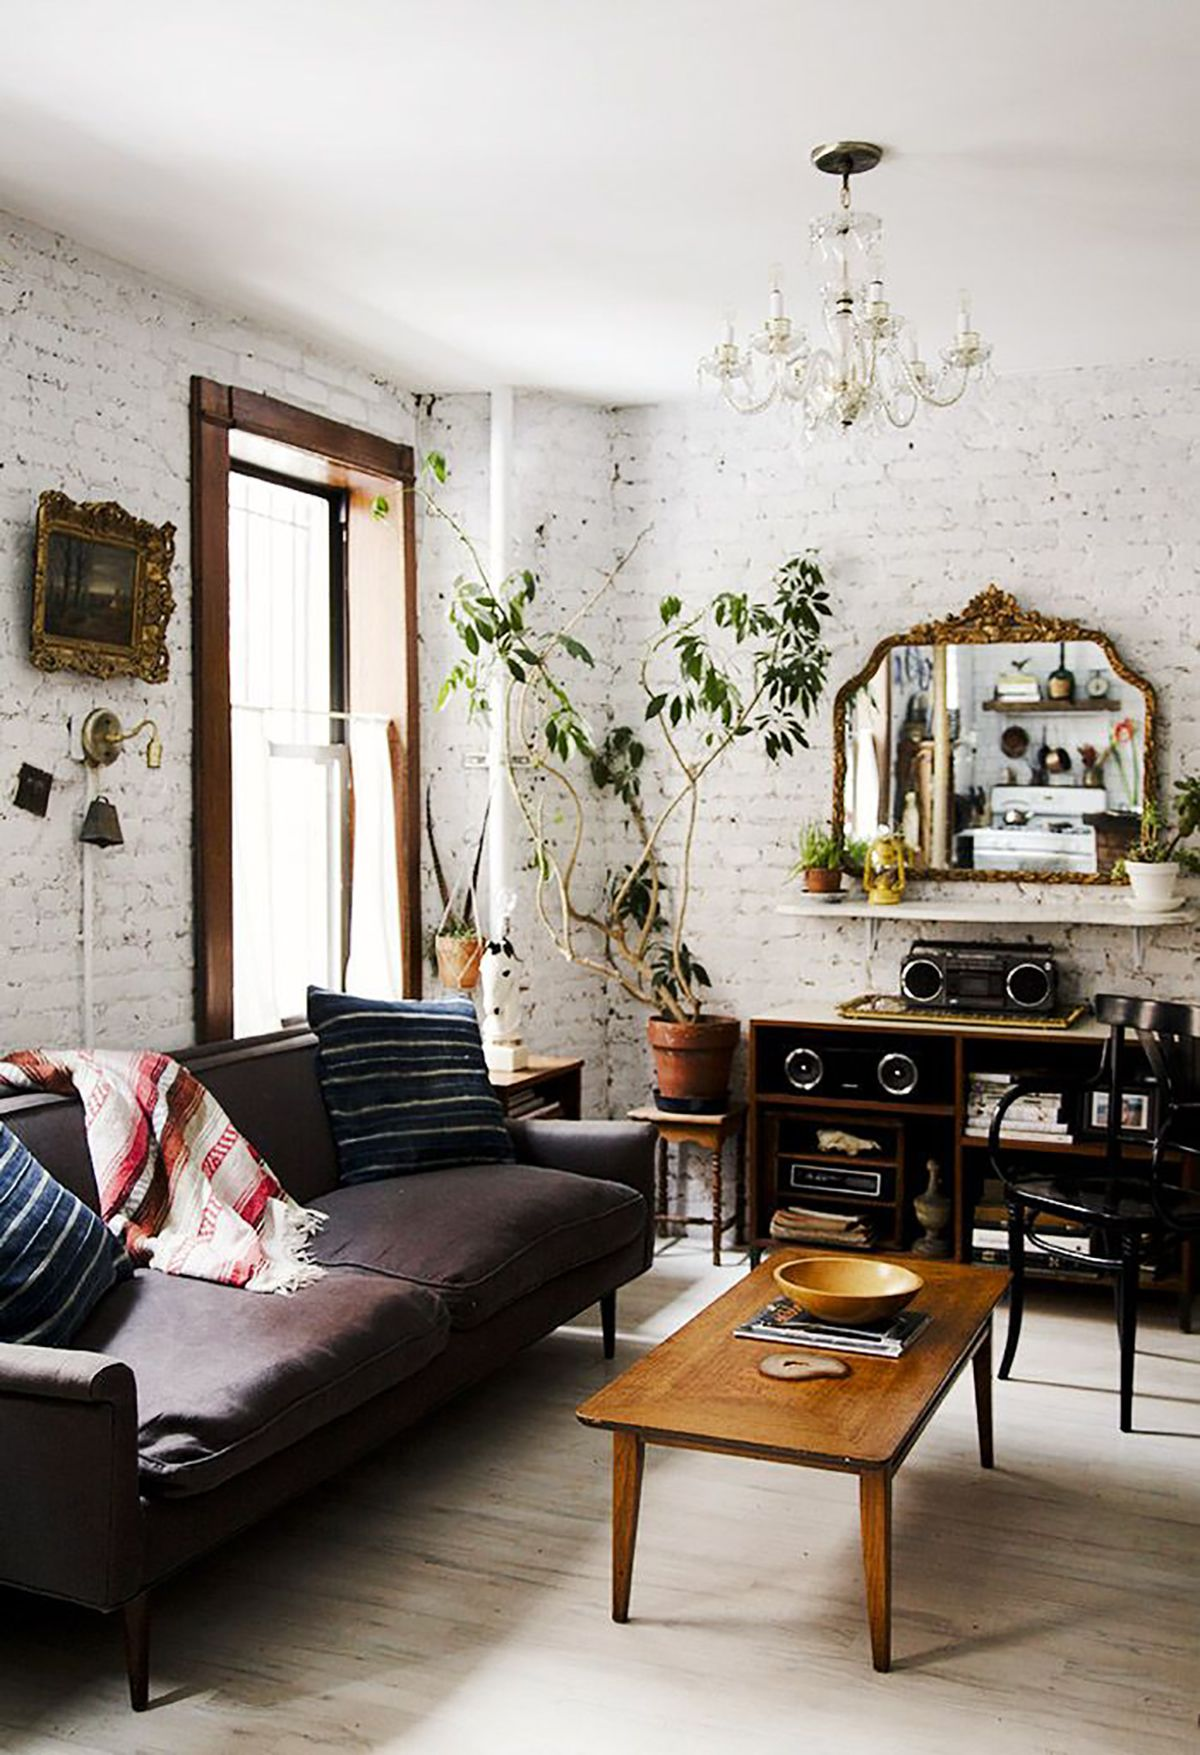 Fantastic interior design tips that can work for anyone   you get more details by clicking on the image ideasforhomedecor also great home rh pinterest